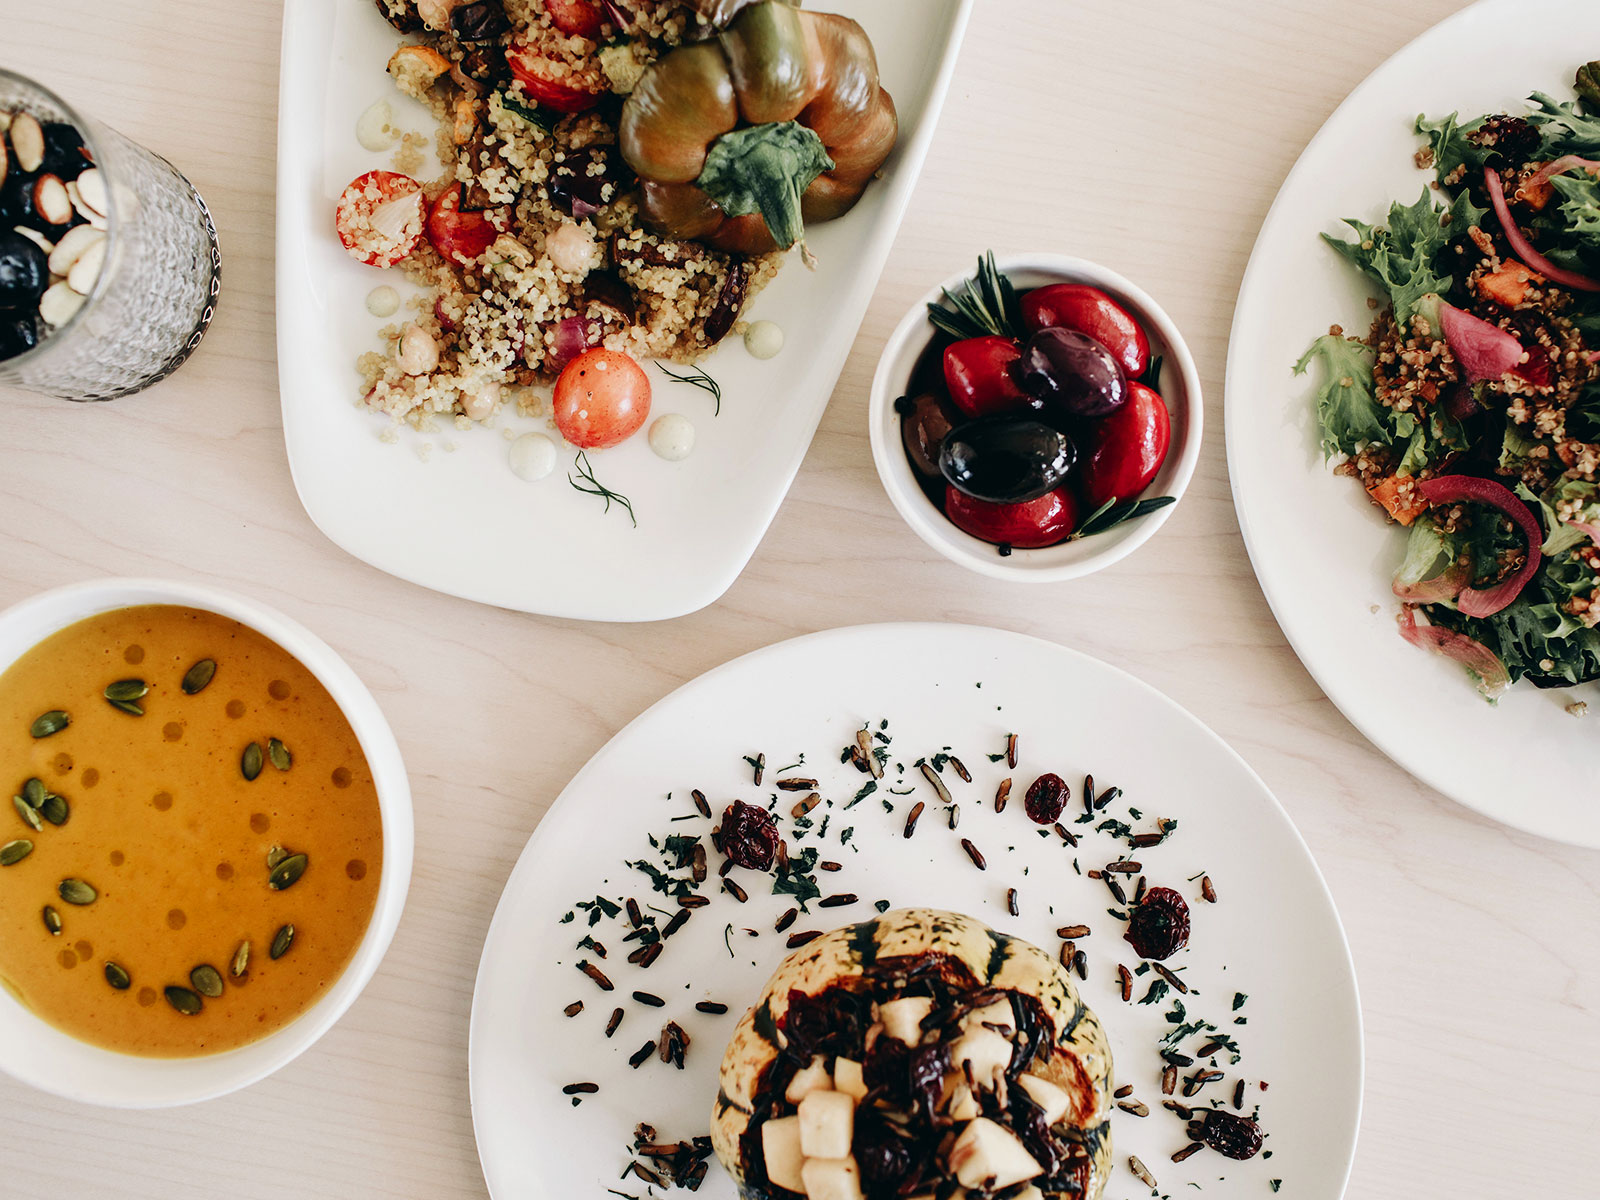 The Best Vegan (and Vegan-friendly) Restaurants in All 50 States